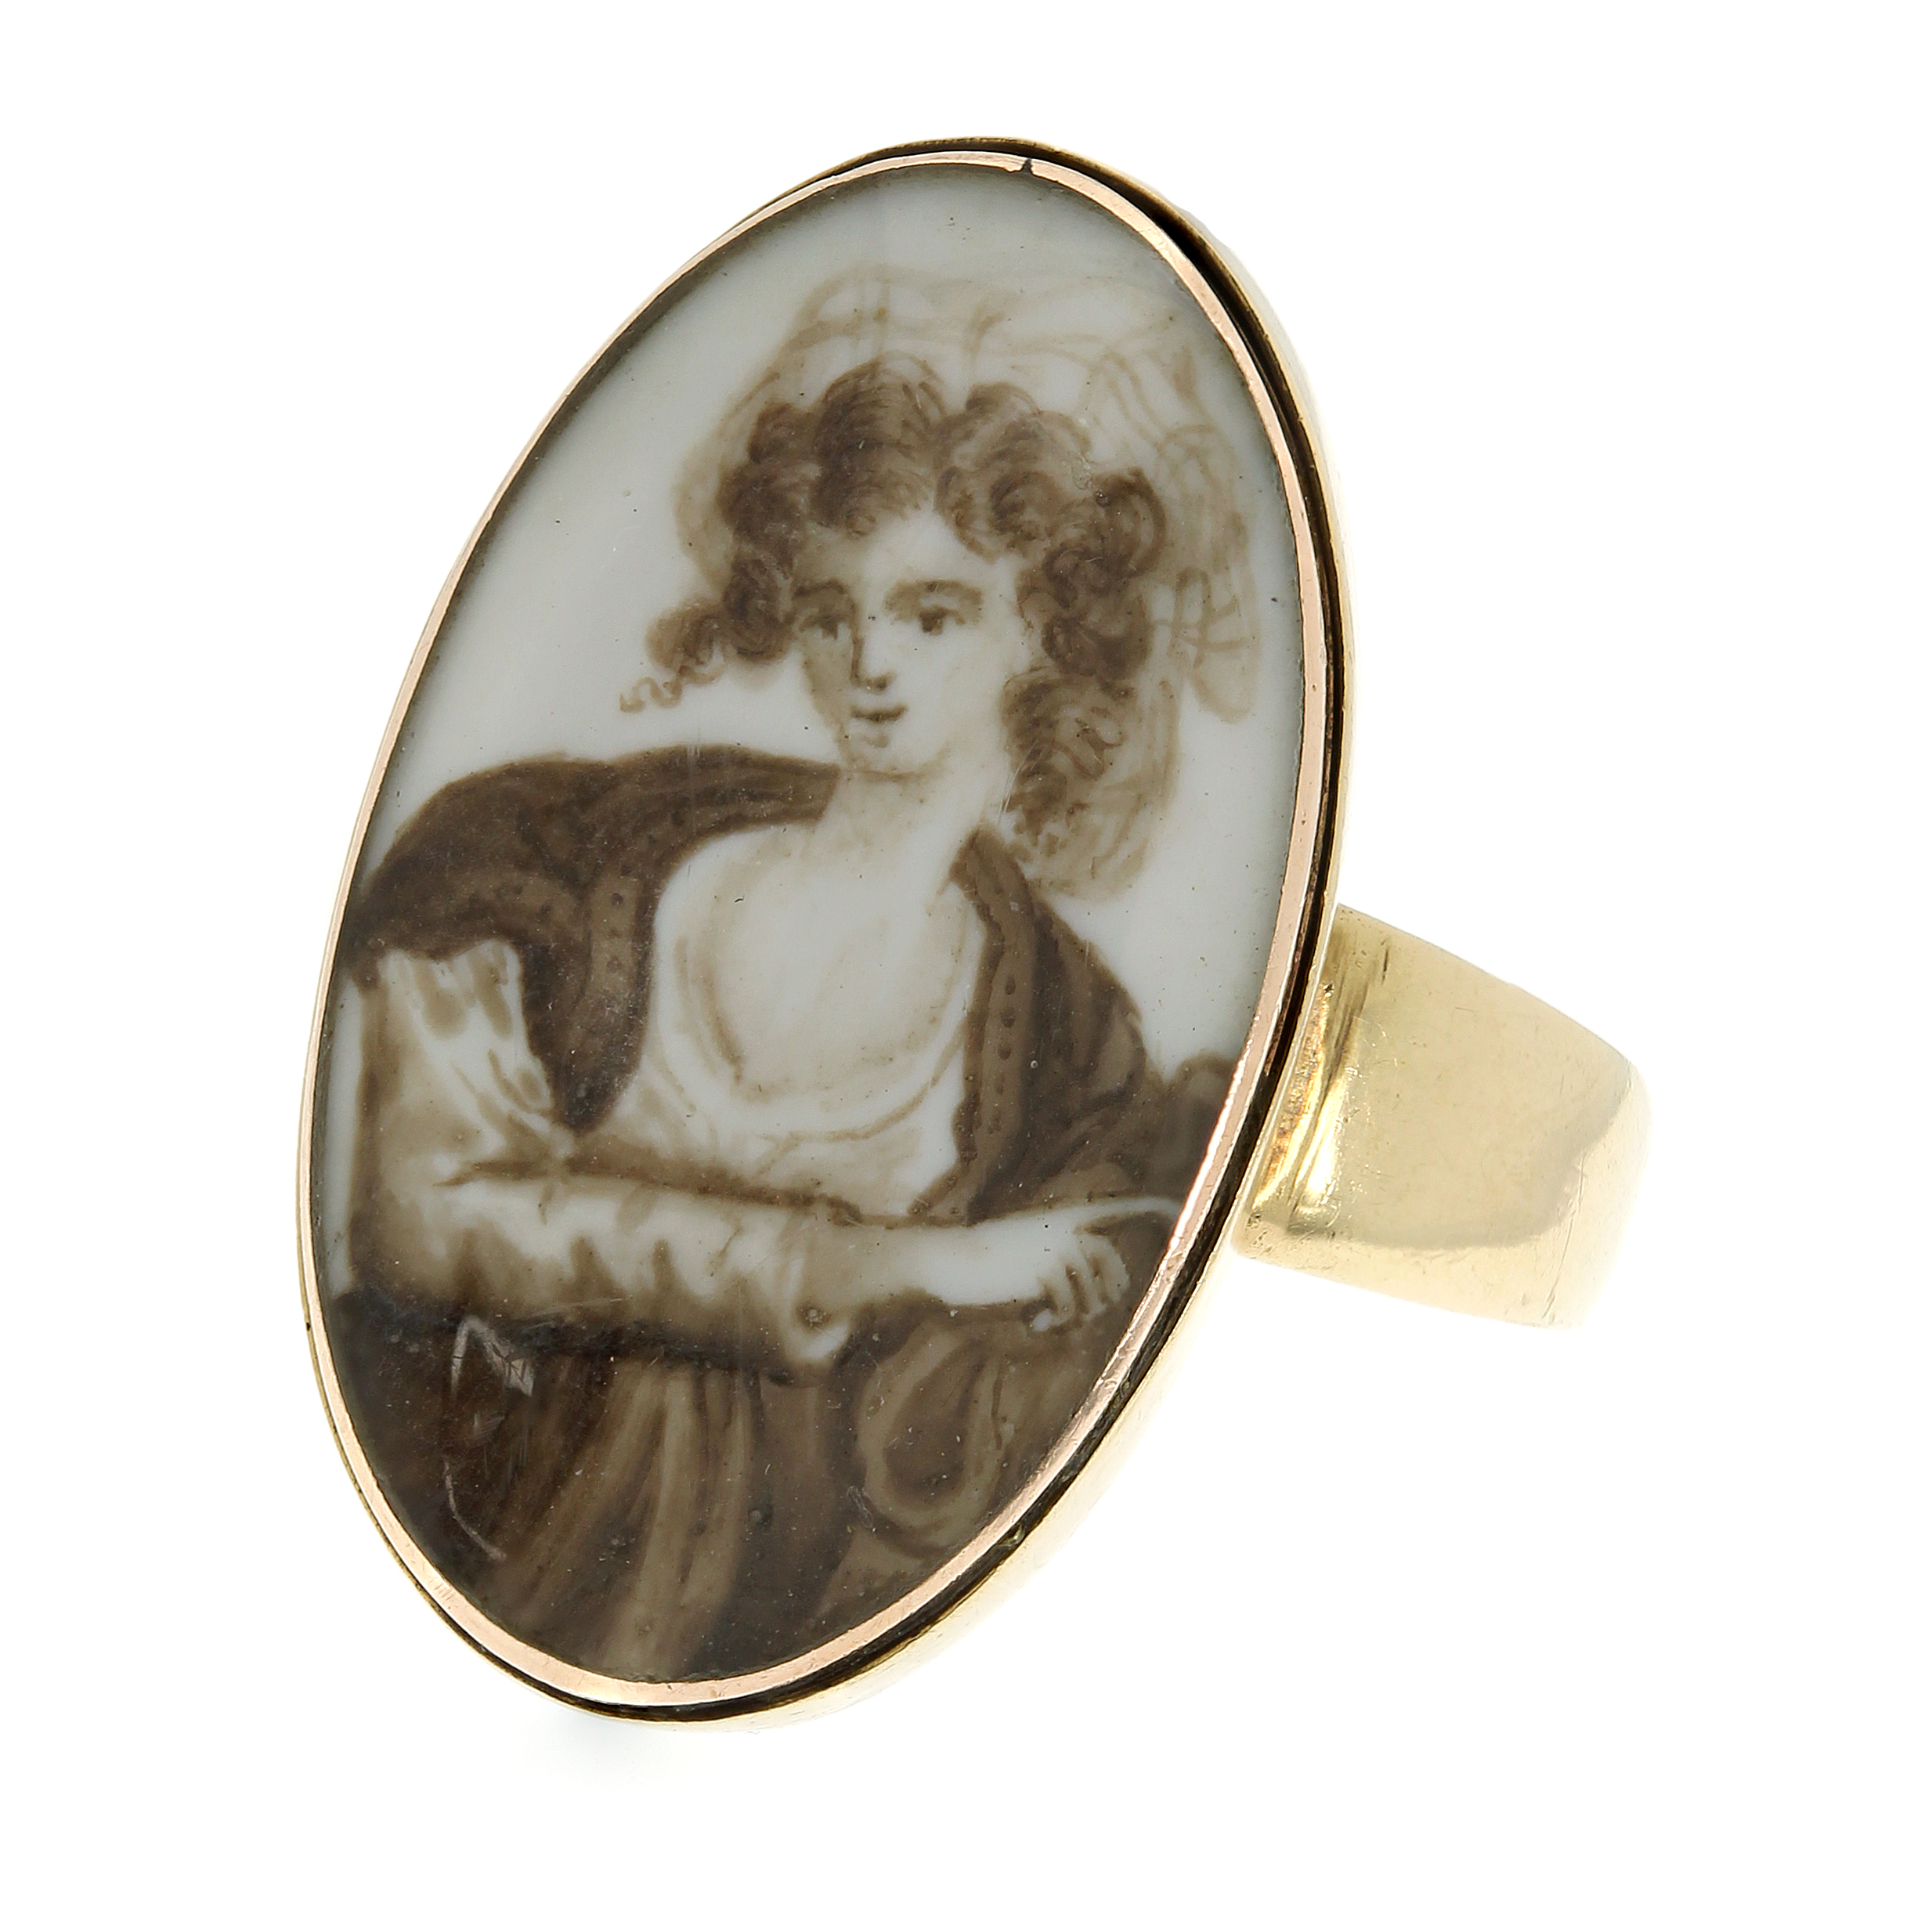 Los 47 - AN ANTIQUE PORTRAIT MINIATURE RING the oval face with an inset painted miniature depicting a lady,